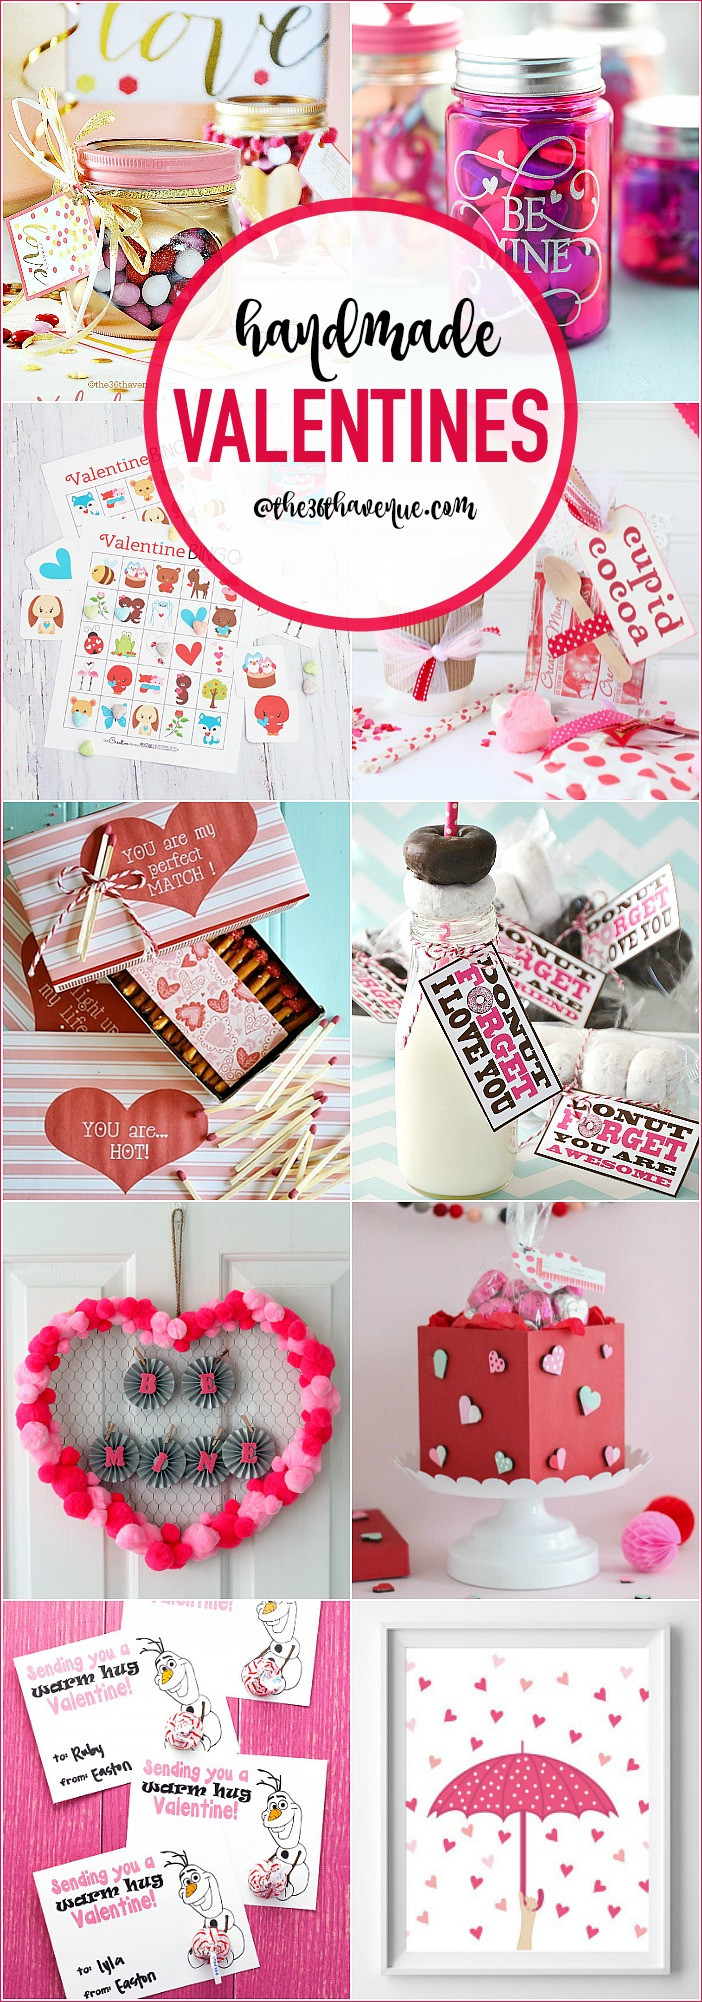 Diy Valentines Gift Ideas  Handmade Valentines DIY Gift Ideas The 36th AVENUE